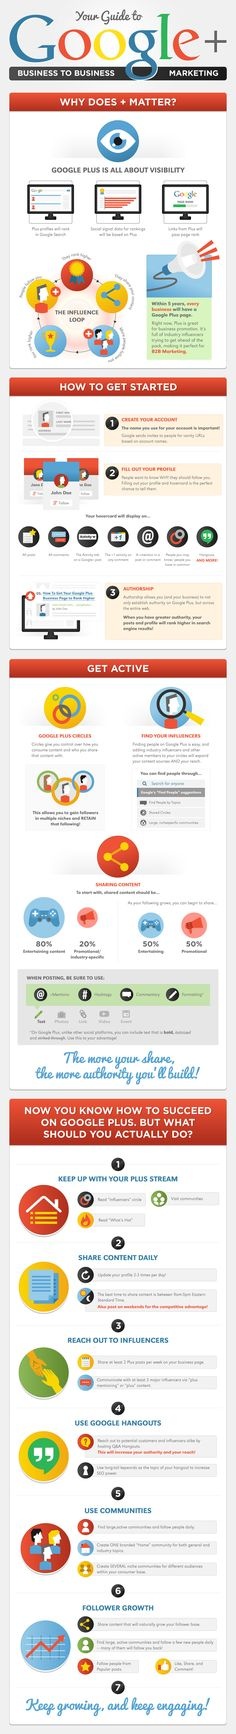 guide_to_google+_social_marketing